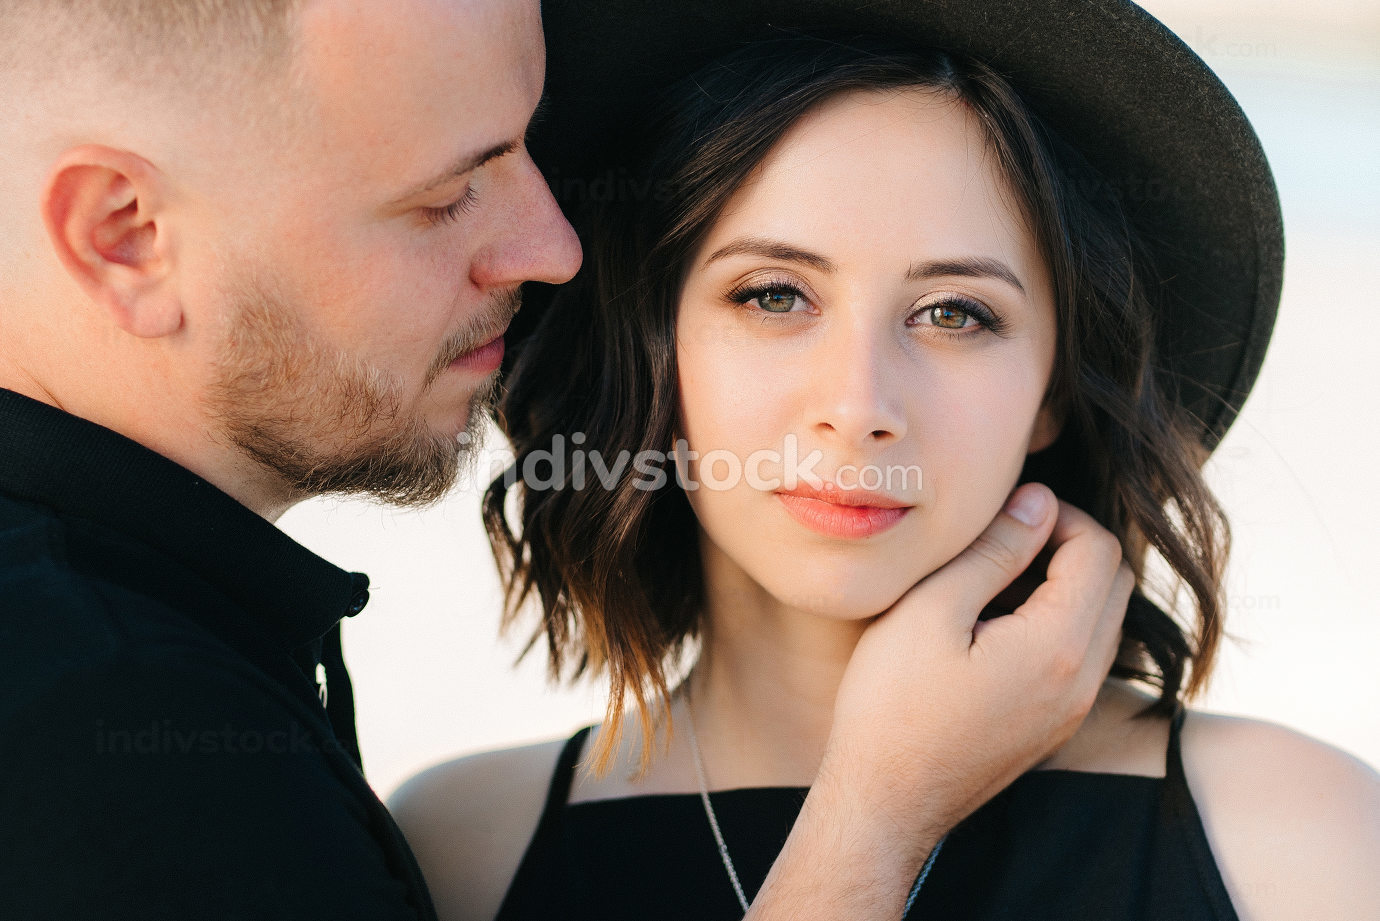 young couple a guy and a girl with joyful emotions in black clot